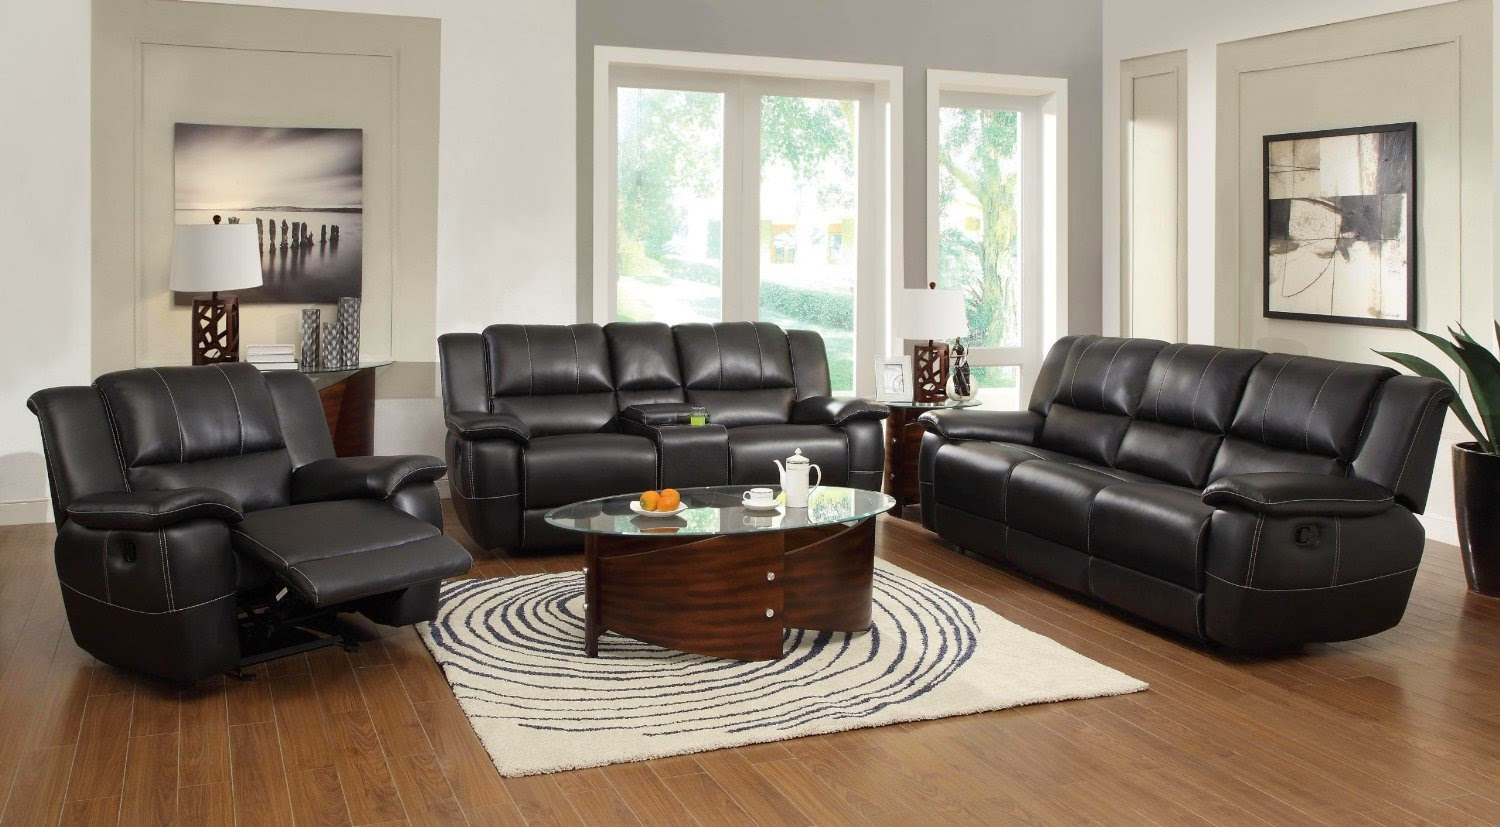 Coaster Home Power Reclining Leather Sofa Reviews